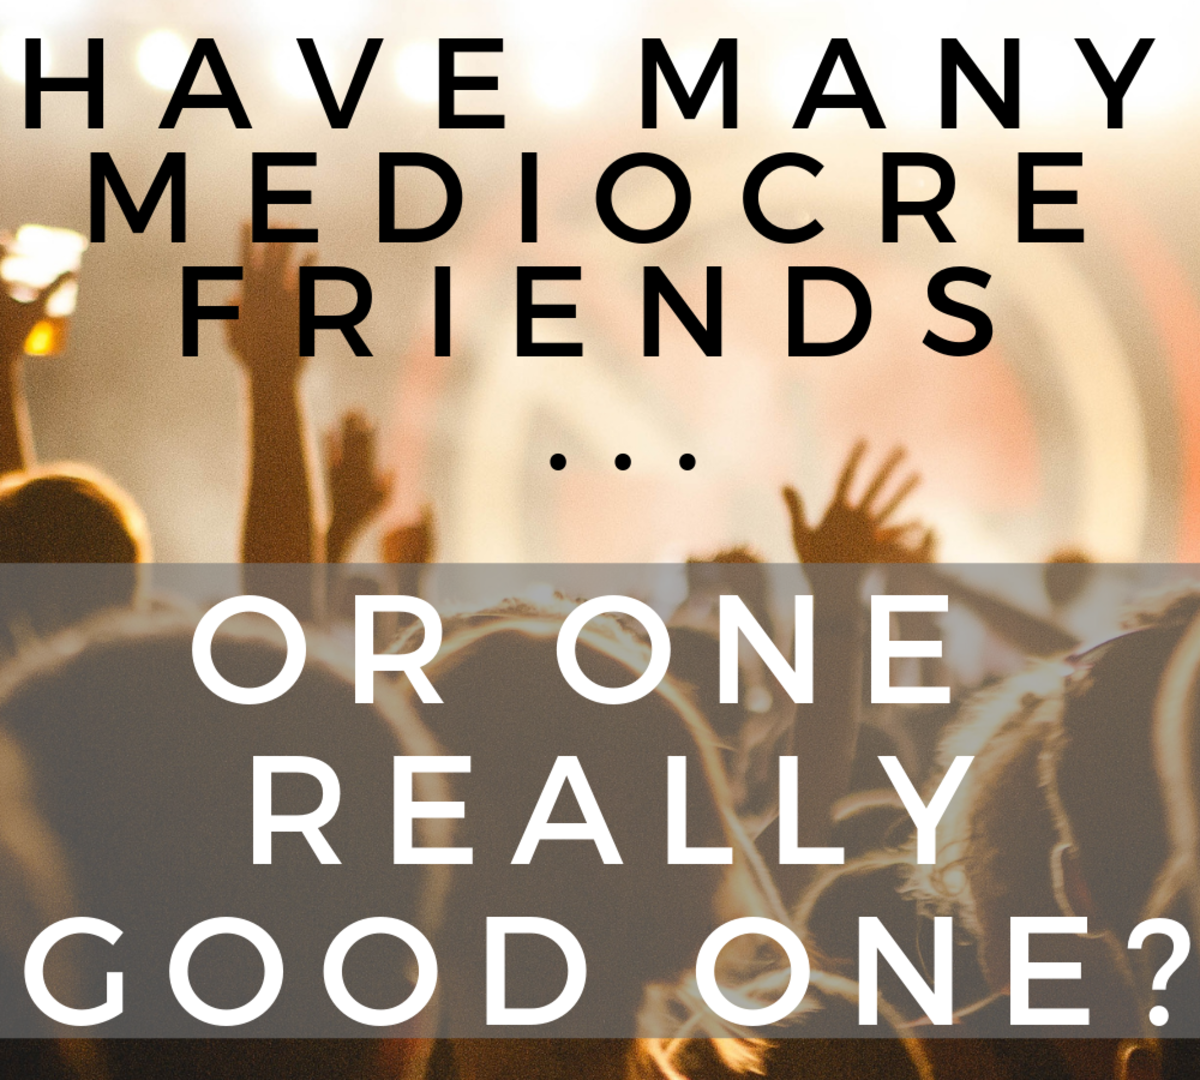 Would you rather have many mediocre friends or one really good one?